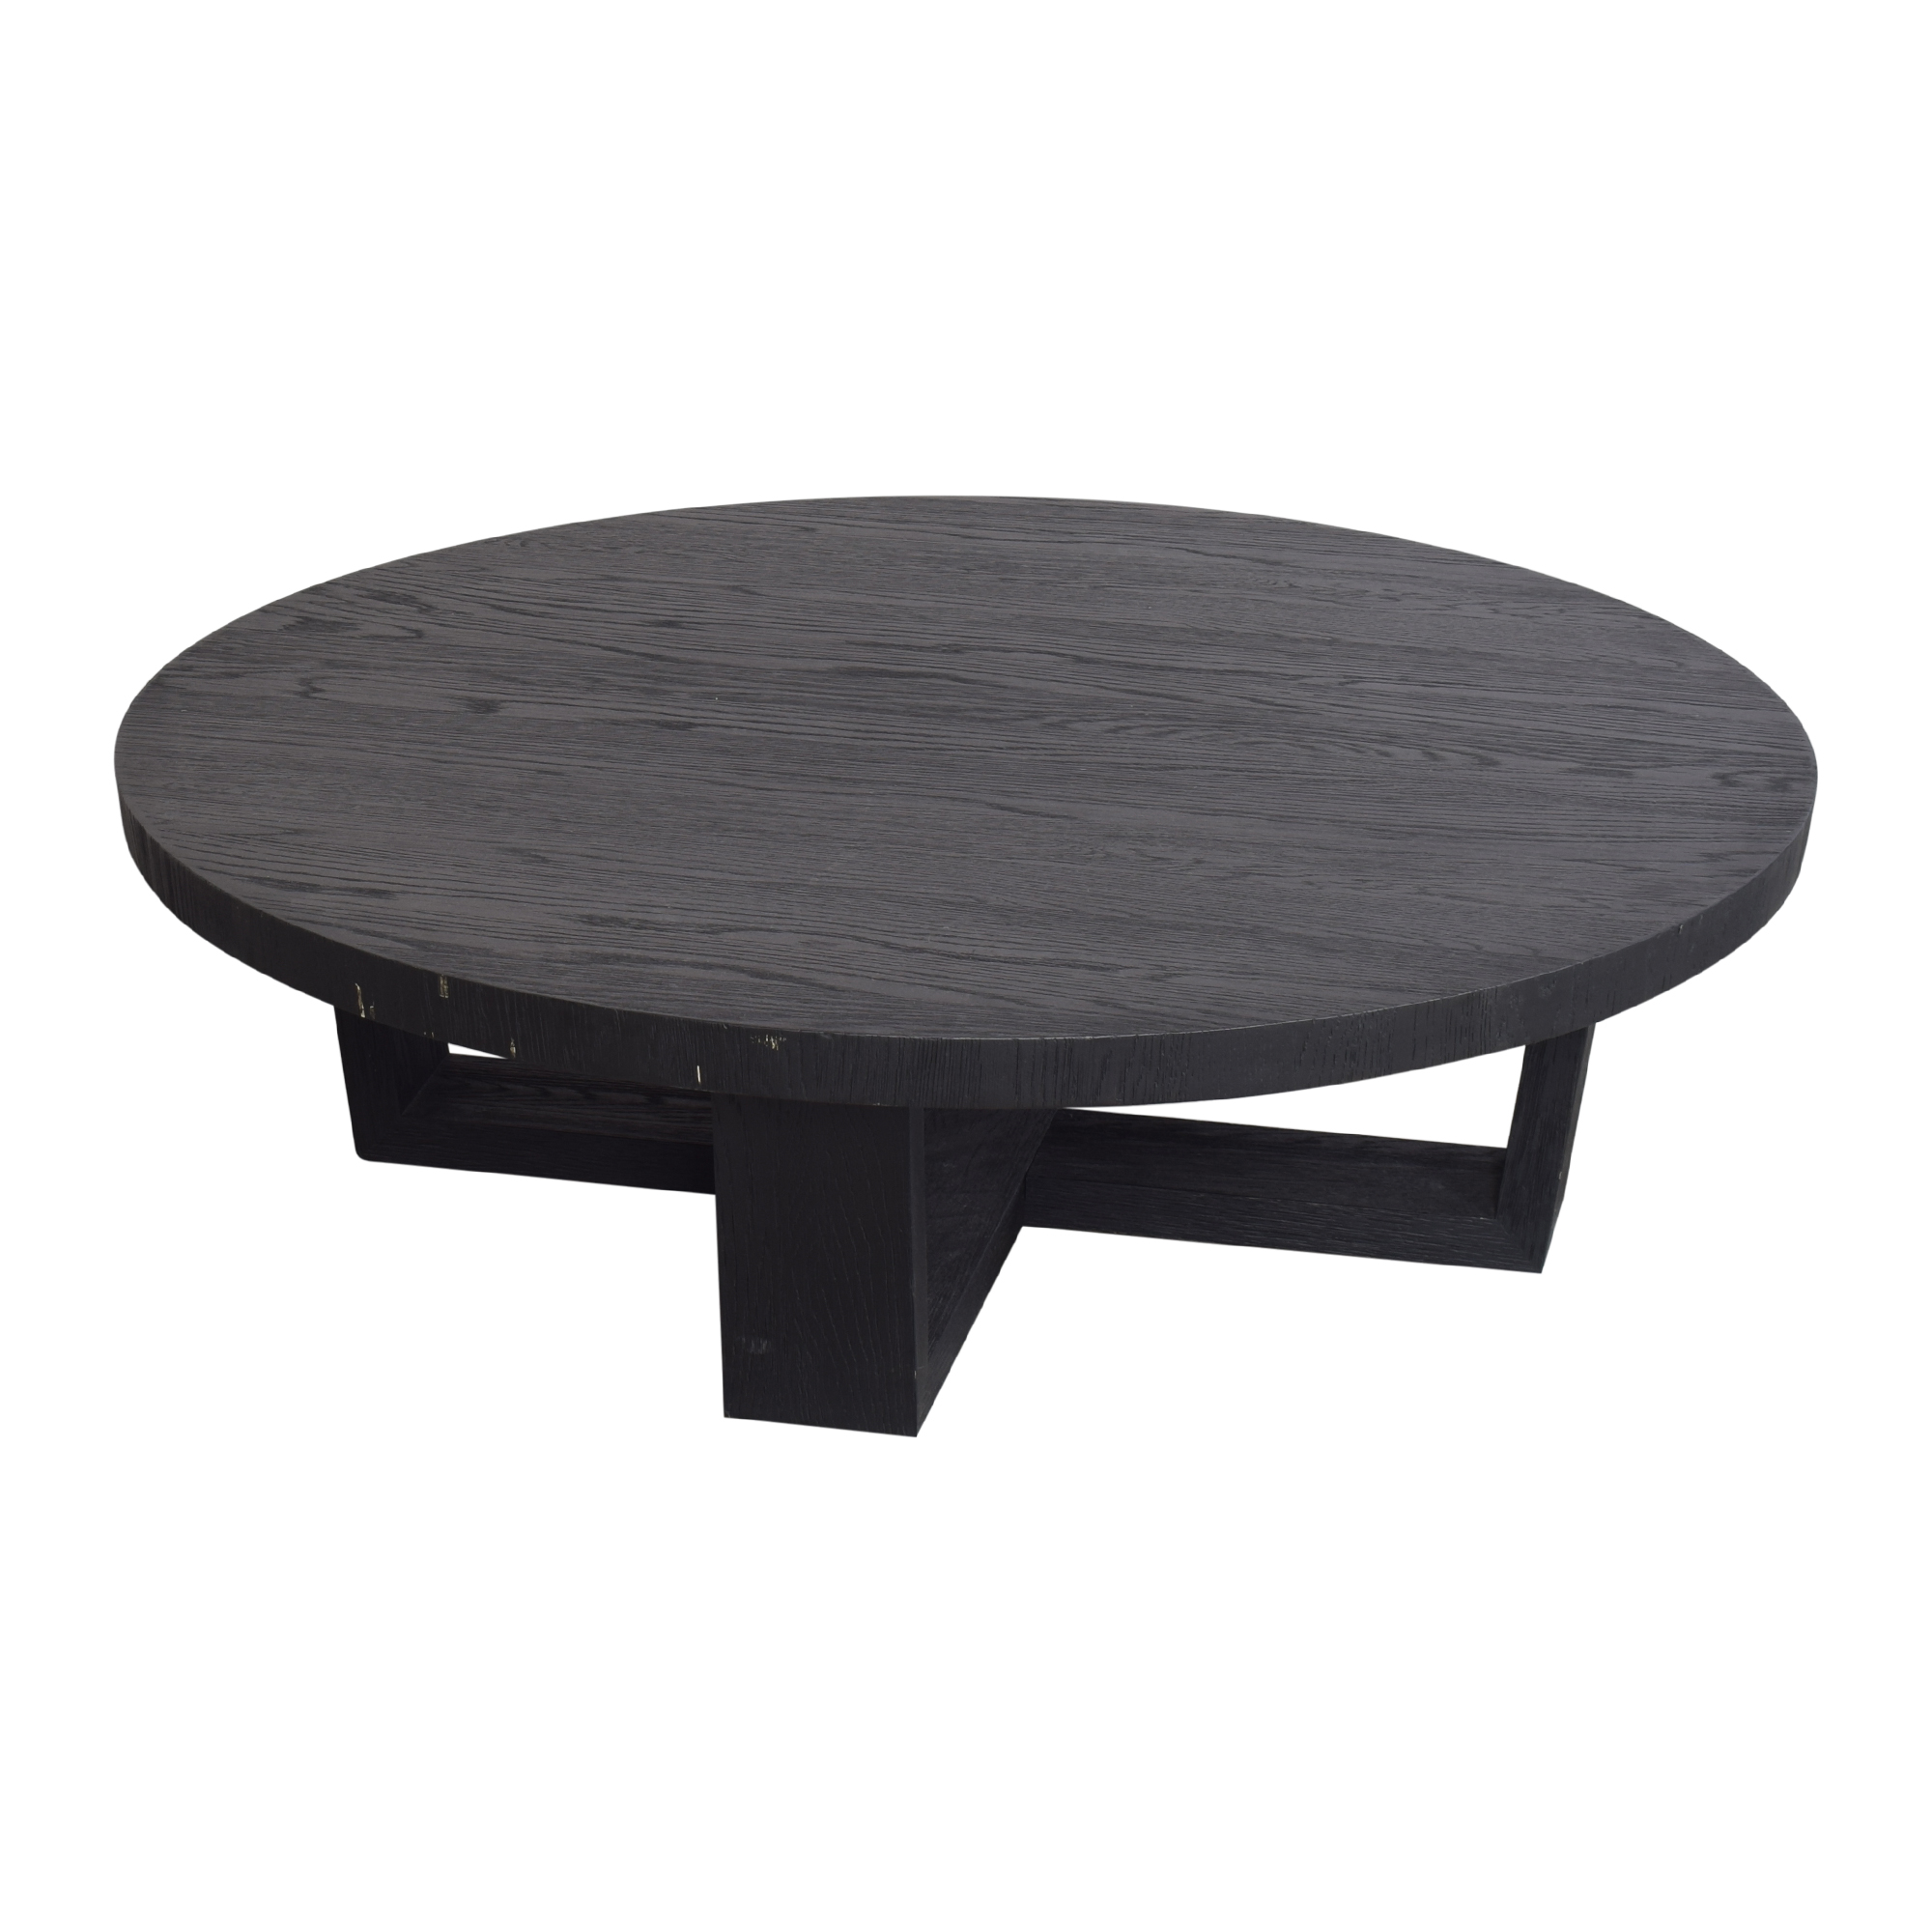 Restoration Hardware Restoration Hardware Antoccino Round Coffee Table Coffee Tables